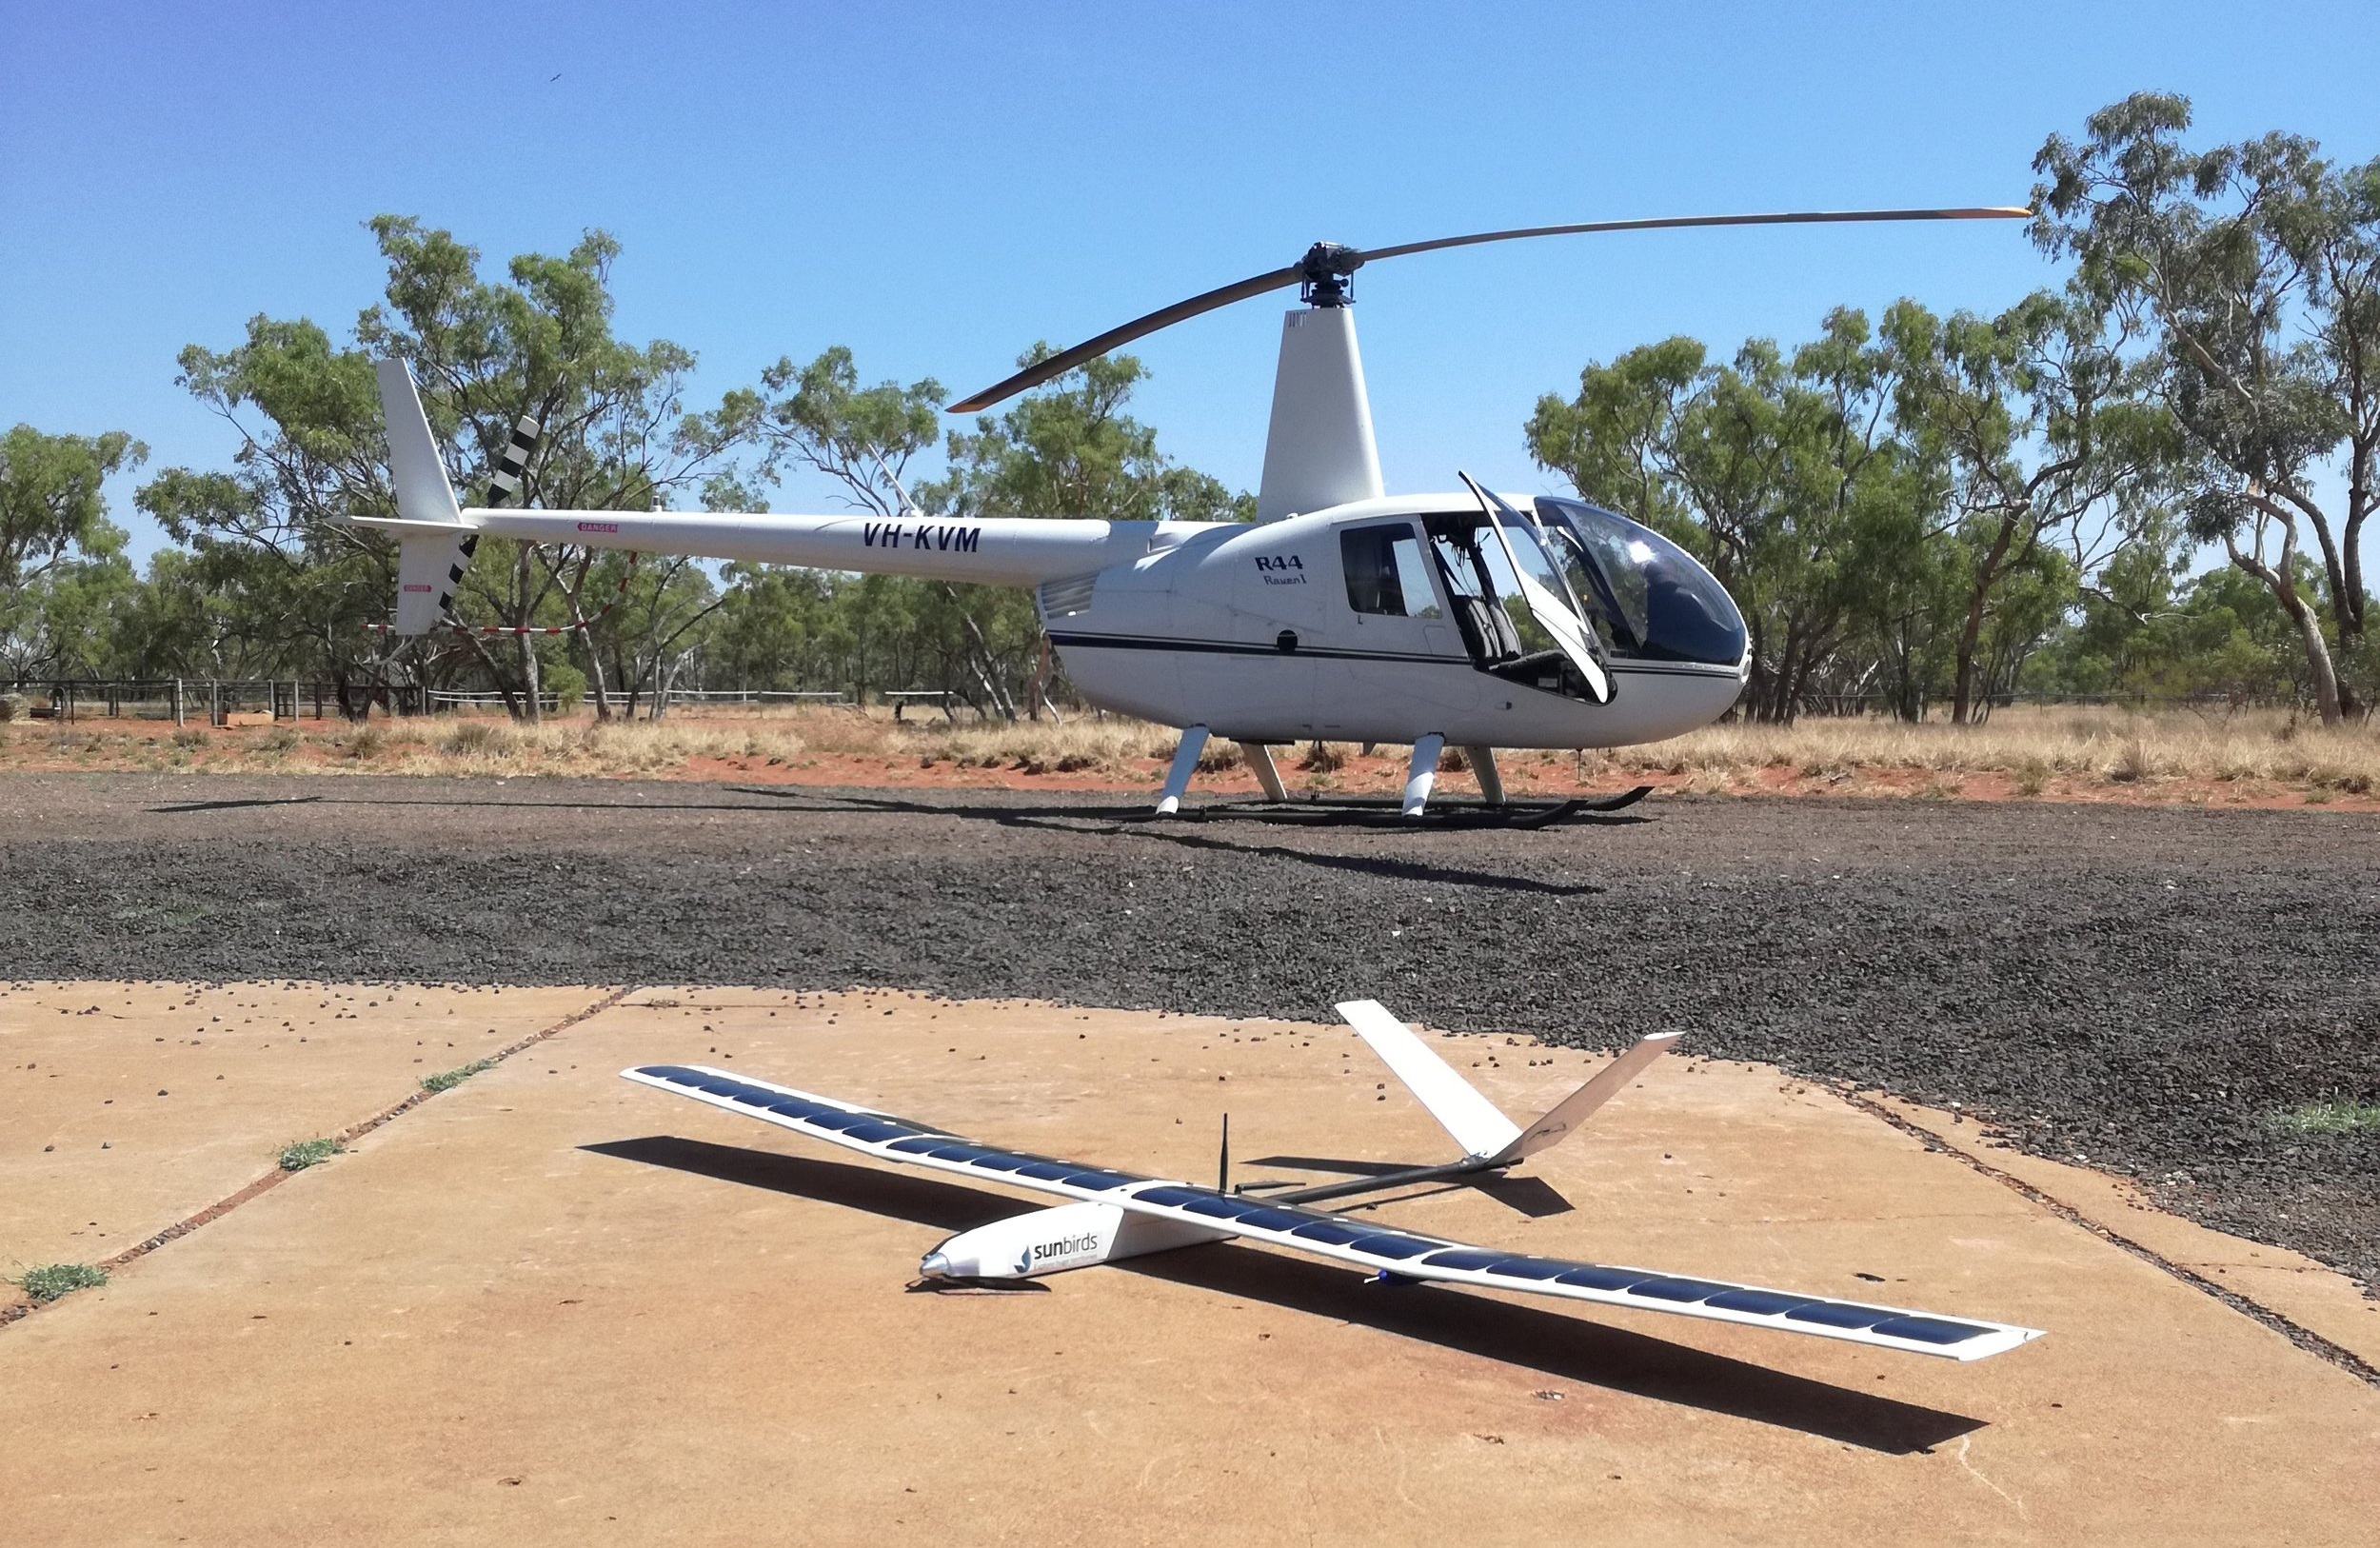 A producer-led innovation - Sunbirds has developed a solution based on its solar powered drone and on landholders' requirements. Contrary to IOT sensors, our drones don't just provide water volume data : they also provide an aerial view of the area surrounding a water point. It gives the same level of information as flying a pilot around the station. HD pictures taken by the drone are displayed on a map of the station and allow to zoom in to get detailed information. Landholders have identified water issues : low level, poor quality, algae, leaks etc. Other information include breaches in fencelines, gates left open, feral animals, dead & bogged cattle and several other abnormalities.